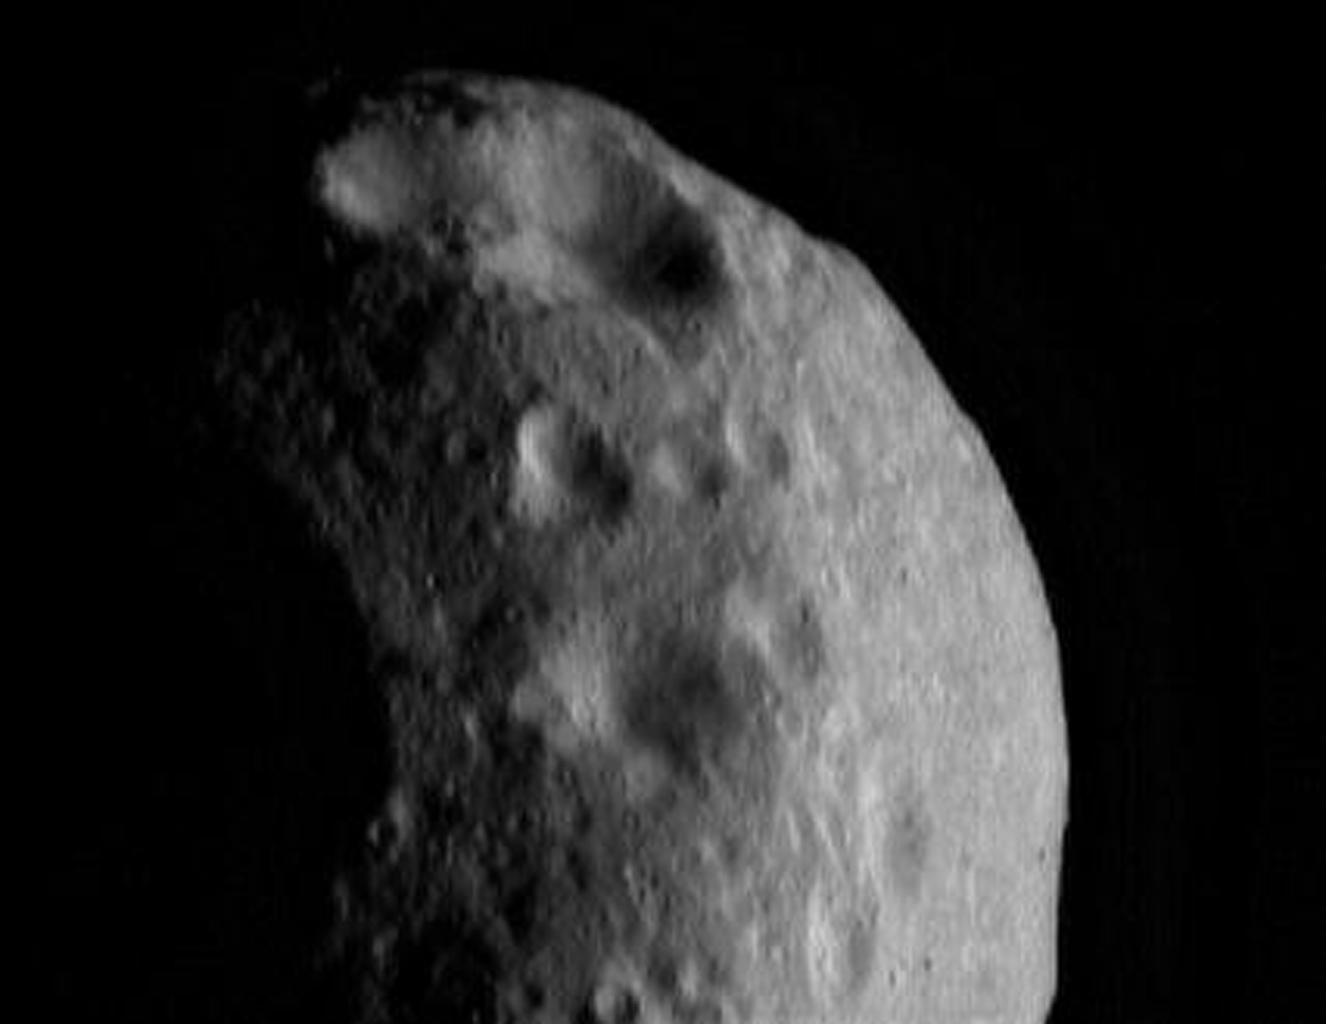 This image of asteroid Eros, taken by NASA's NEAR Shoemaker on March 6, 2000, shows craters with a variety of shapes and sizes.